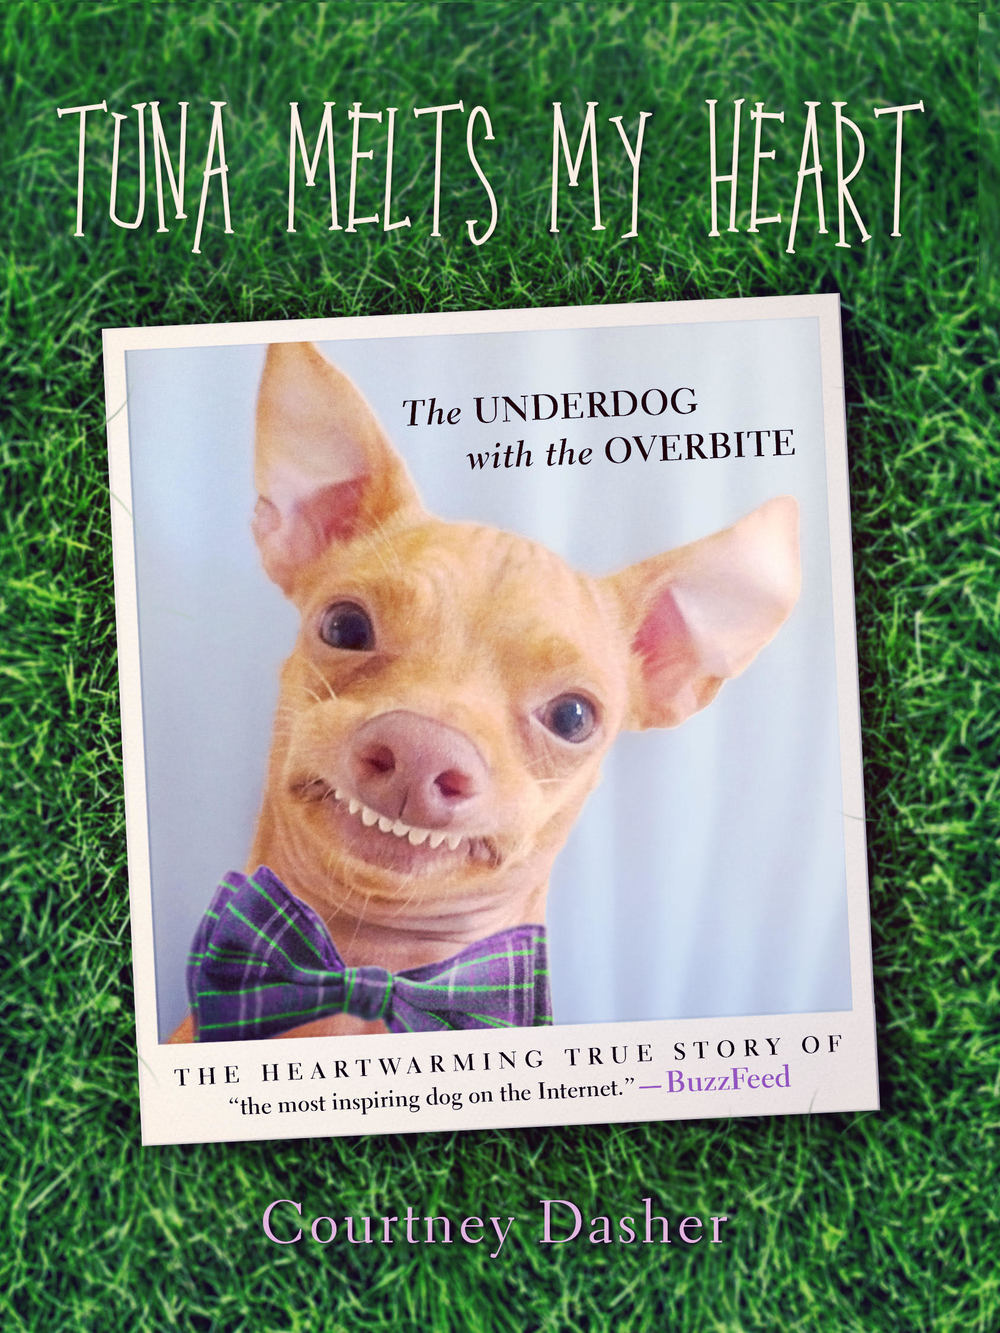 THE TUNA BOOK - COMING SOON